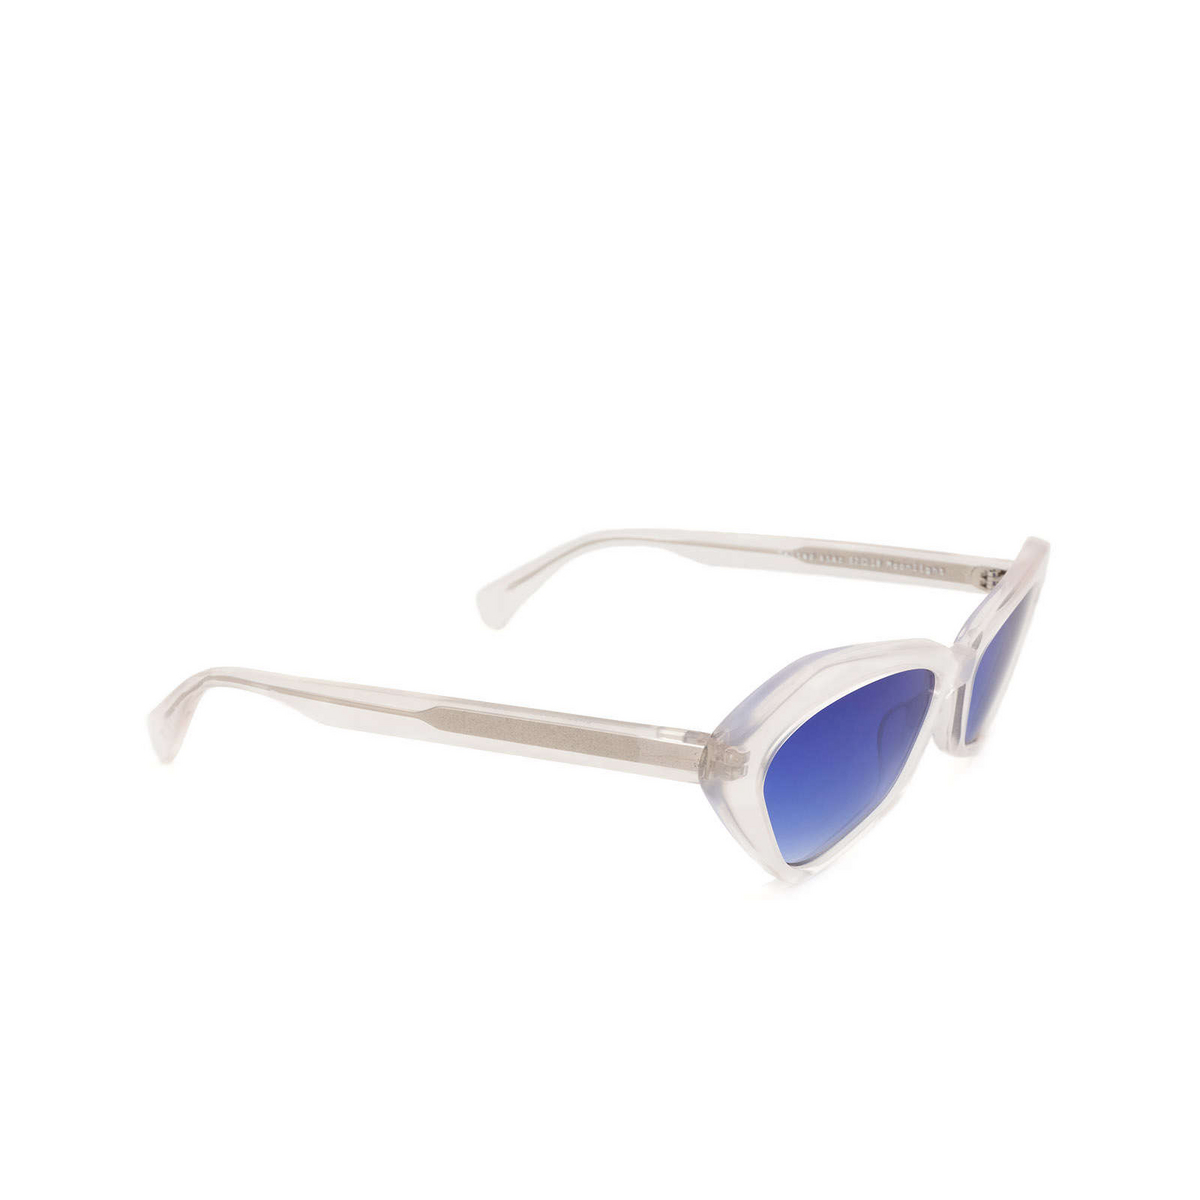 Chimi® Irregular Sunglasses: Space Melted Star color White Moonlight - three-quarters view.